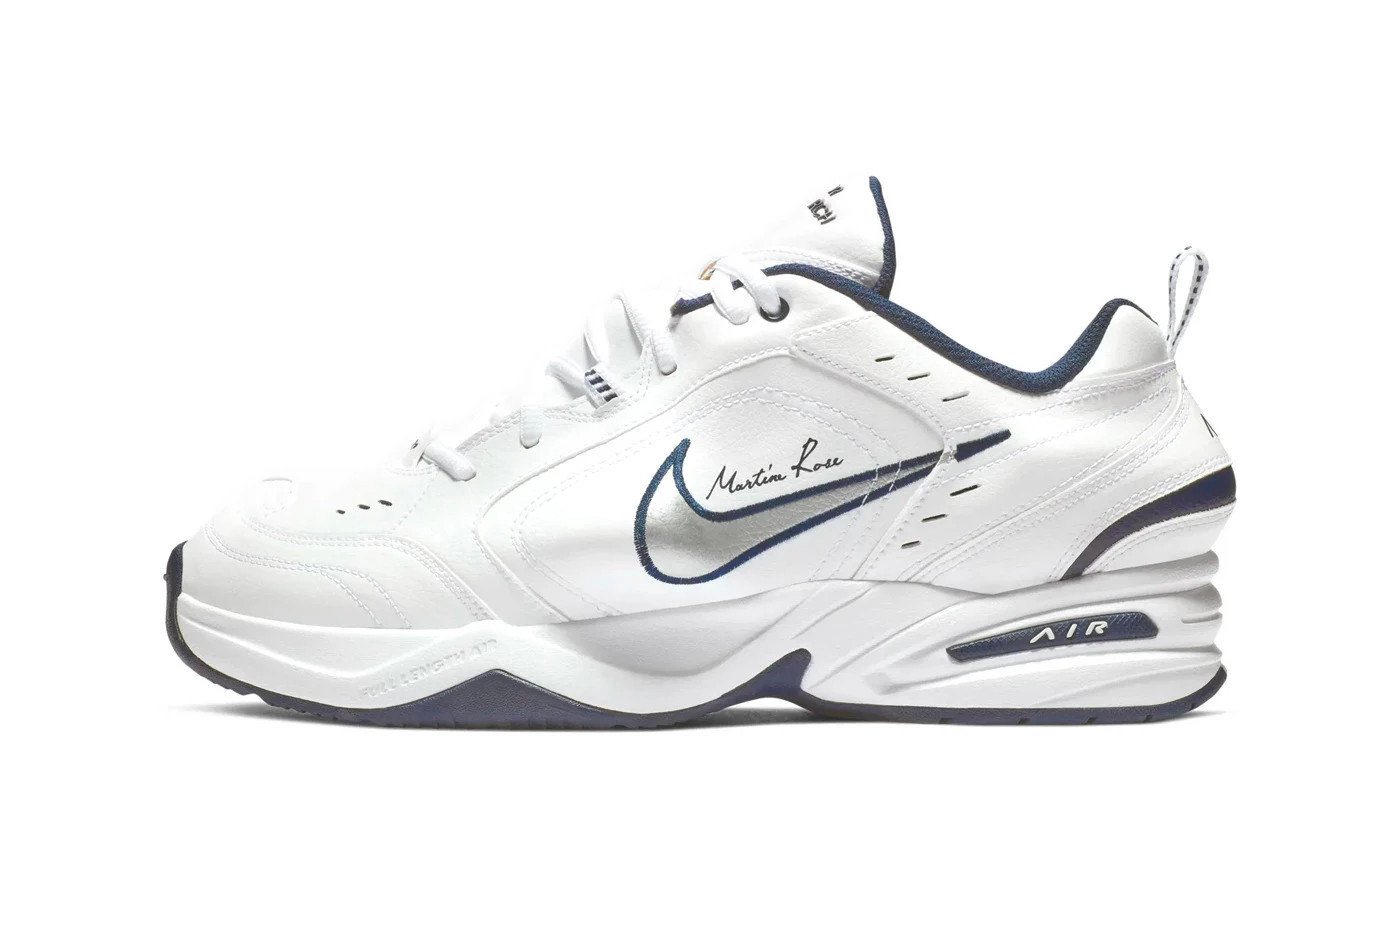 Martine Rose Nike Air Monarch IV Sneakers Sneaker Collaboration Rose Pink Millennial 2019